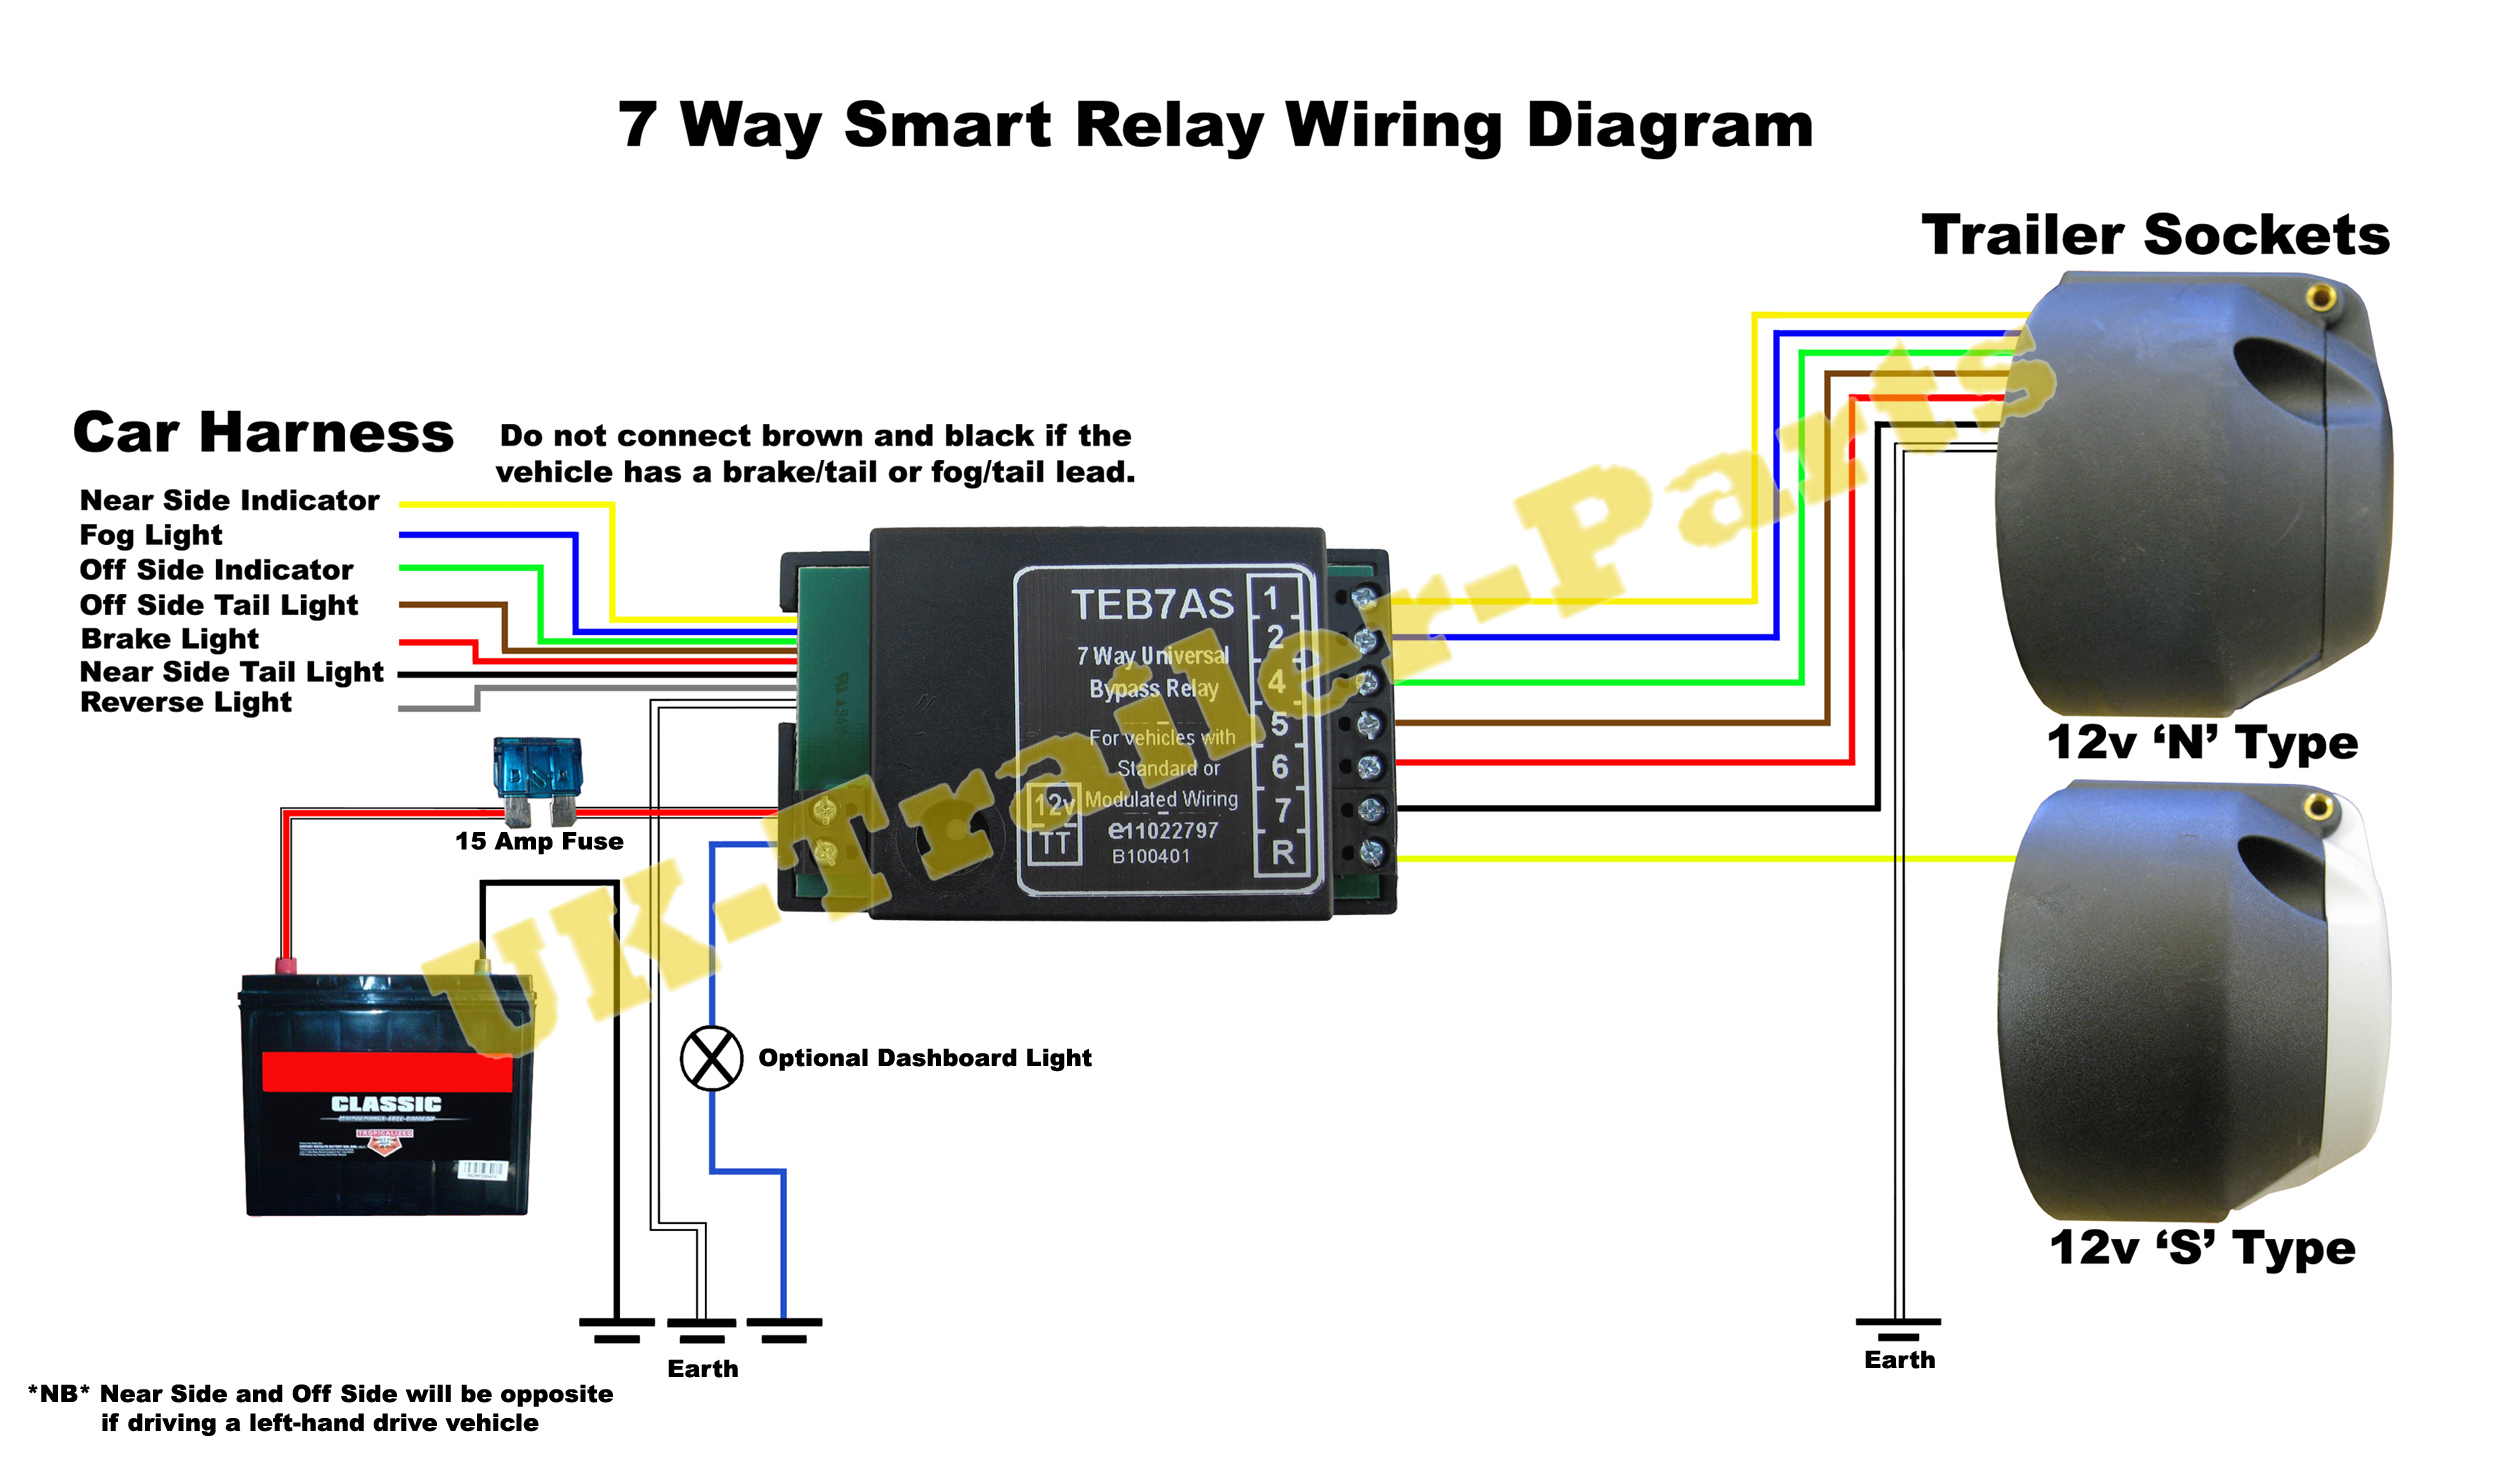 smart relay wiring diagram2 skoda yeti towbar wiring diagram skoda 13 \u2022 wiring diagrams j ford mondeo estate towbar wiring diagram at eliteediting.co